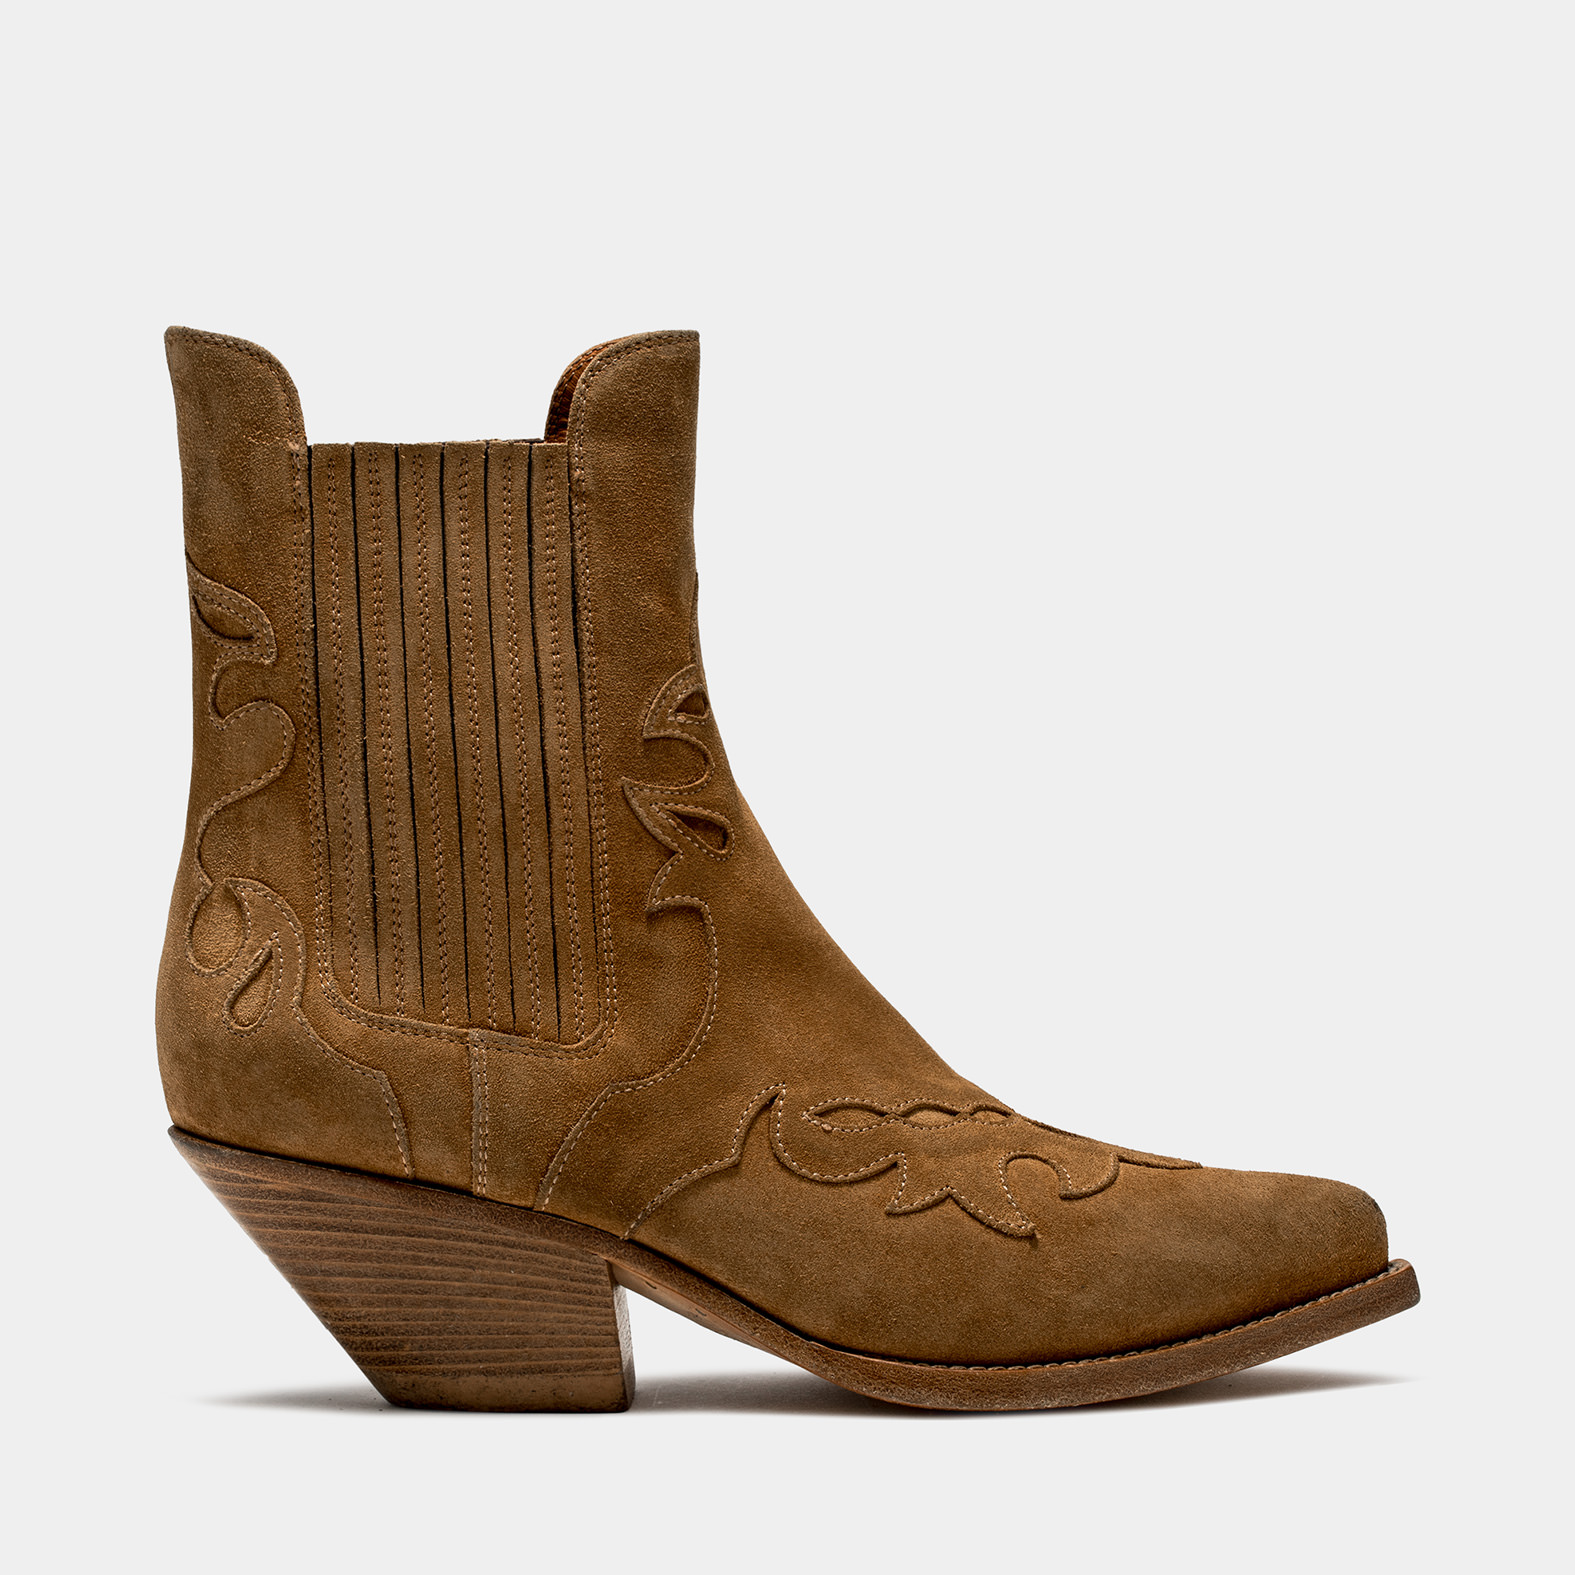 BUTTERO: ELISE LOW TOP DURANGO BOOTS IN COPPER BROWN INLAID SUEDE